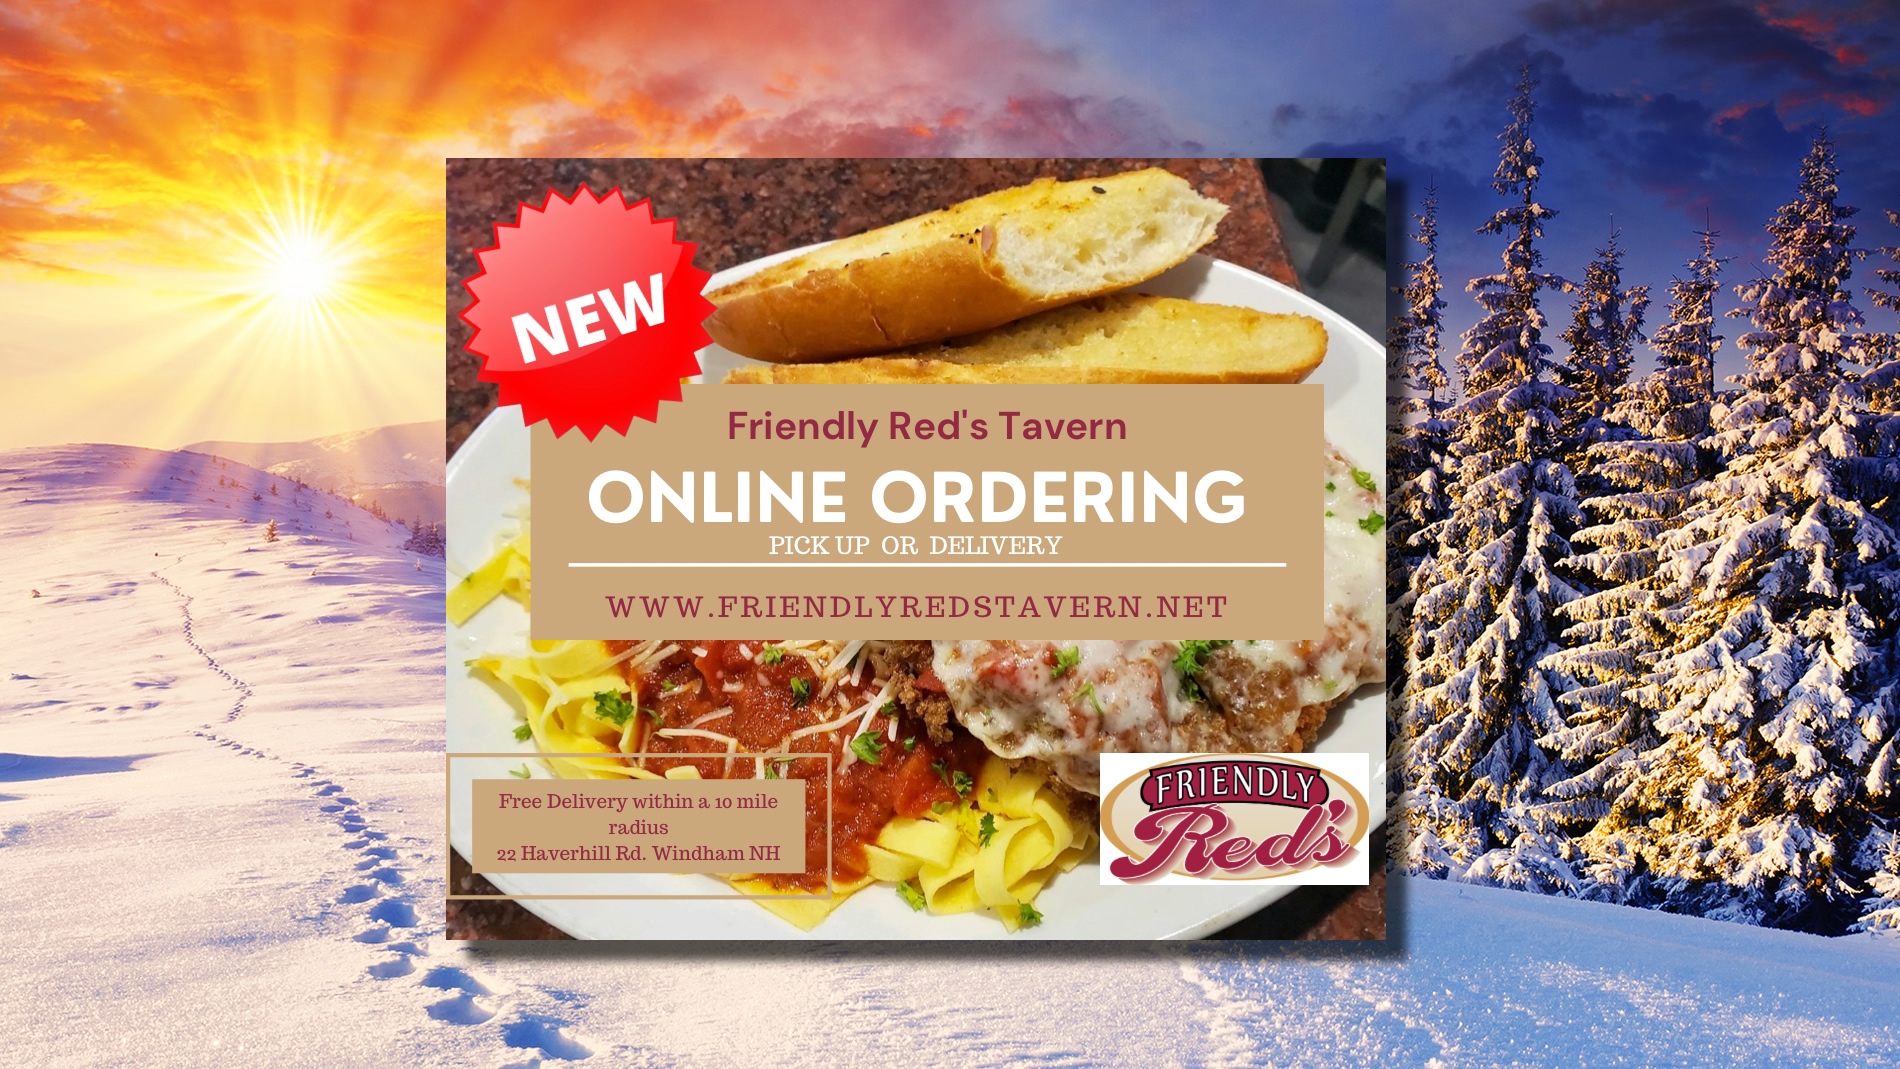 Friendly Red's Now Offers Online Ordering!